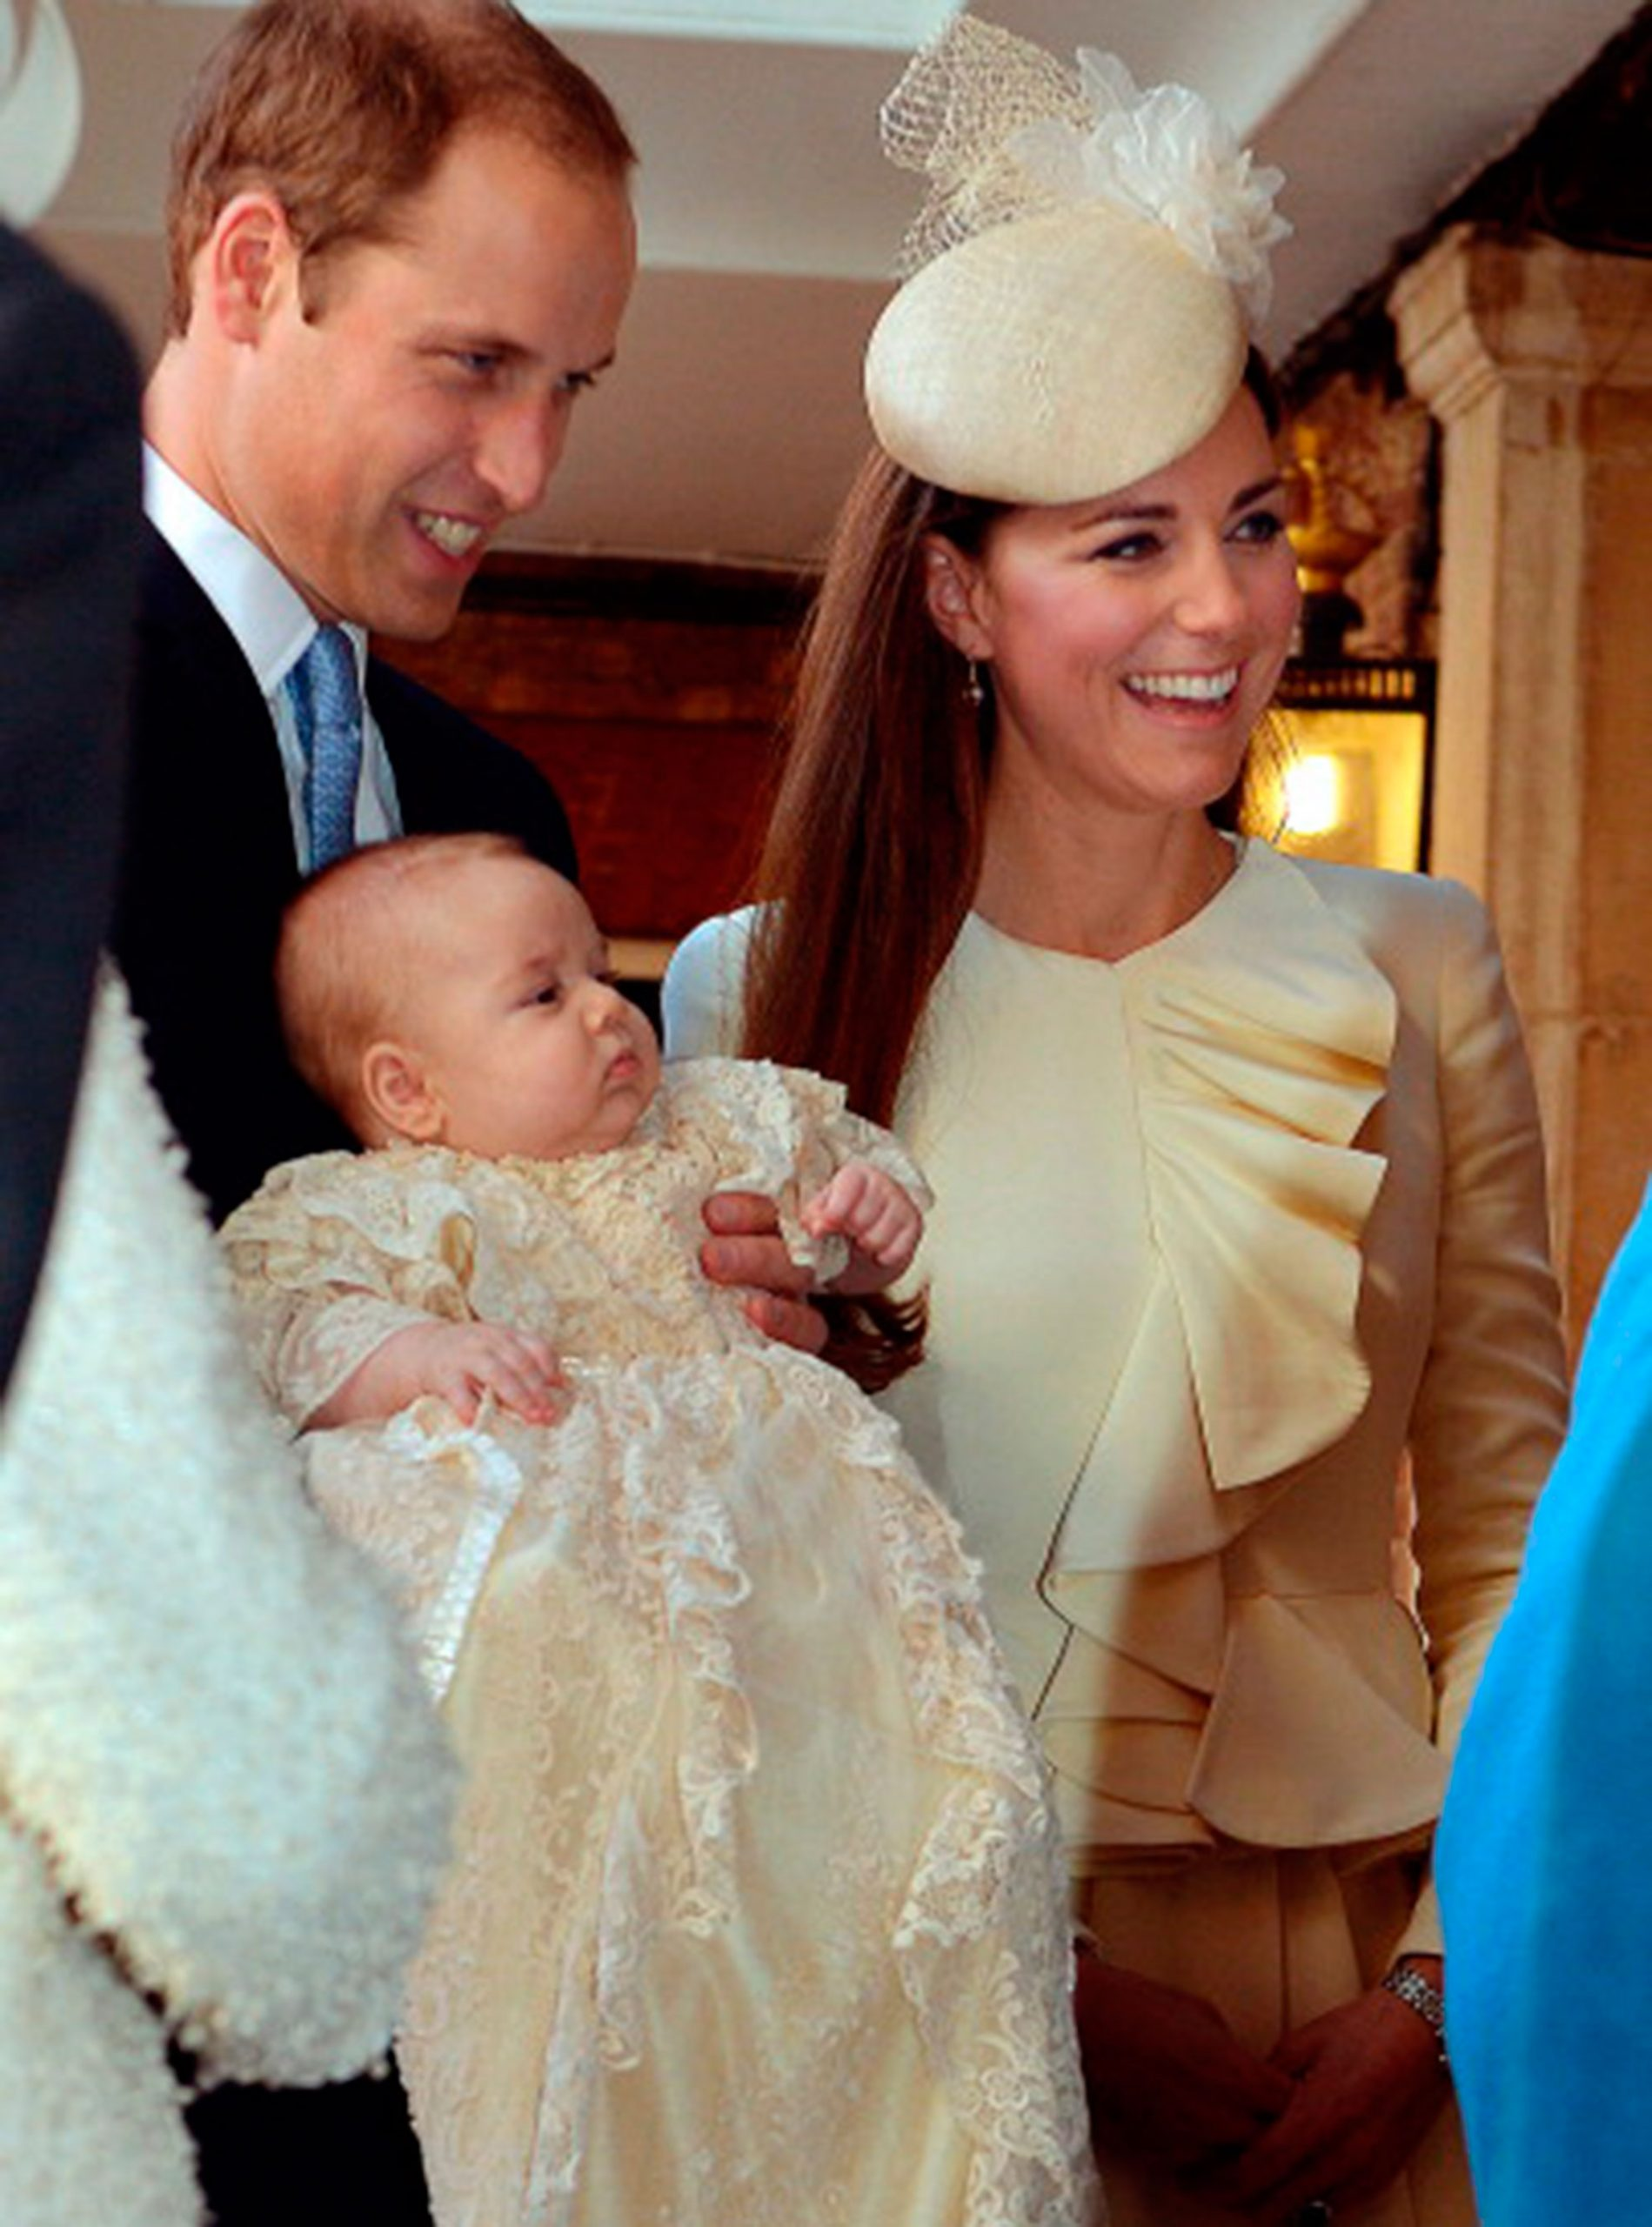 Prince William, Duchess of Cambridge and Prince George photo